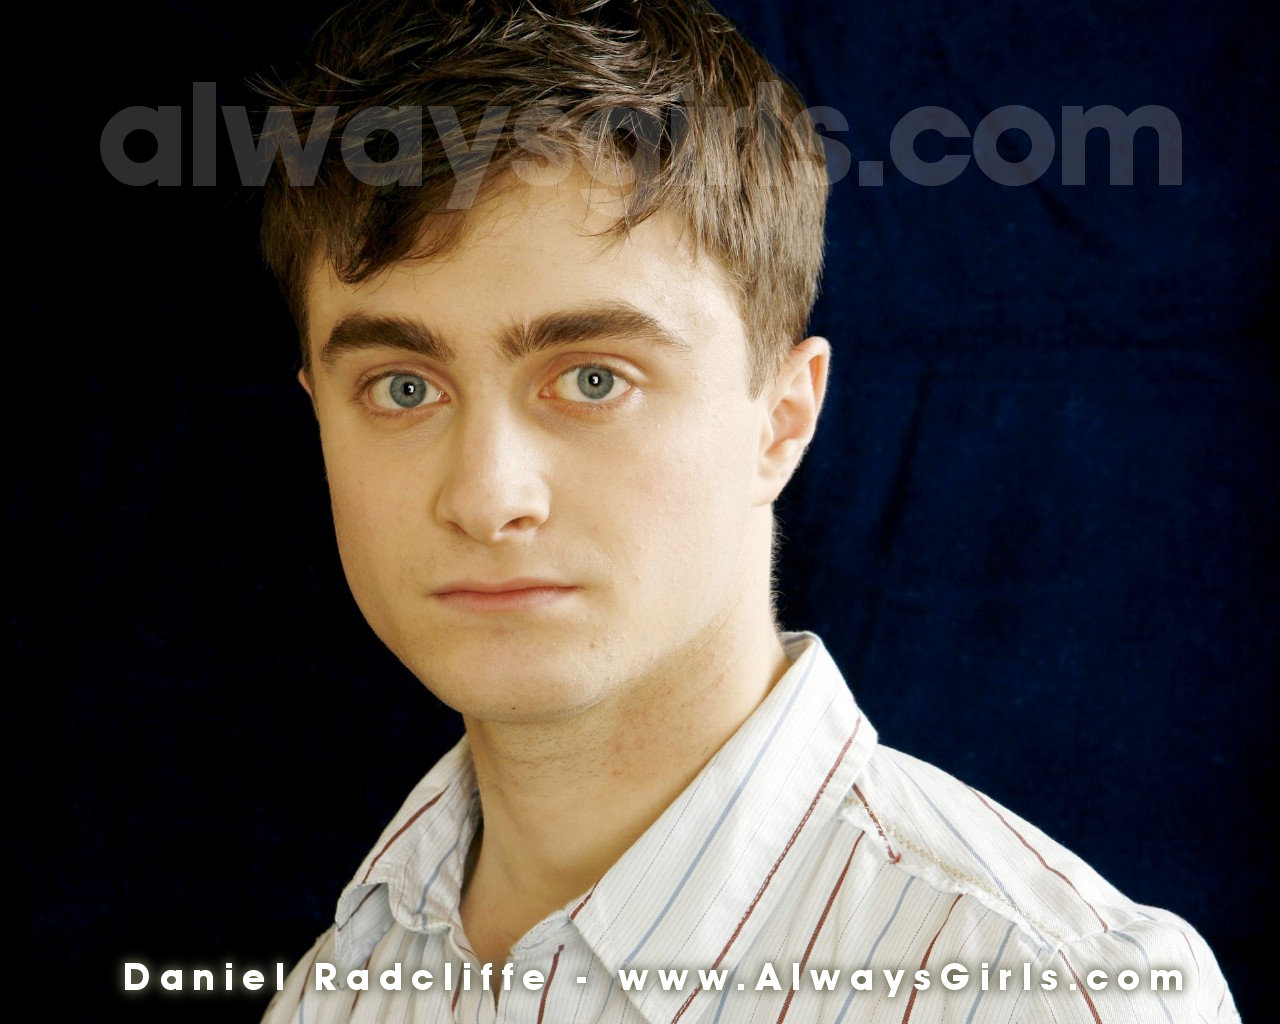 Daniel radcliffe periodic table choice image periodic table images news and entertainment daniel radcliffe jan 05 2013 155958 httpimages4fanpopimagephotos24200000daniel radcliffe daniel radcliffe 24258886 1280 1024g gamestrikefo Images